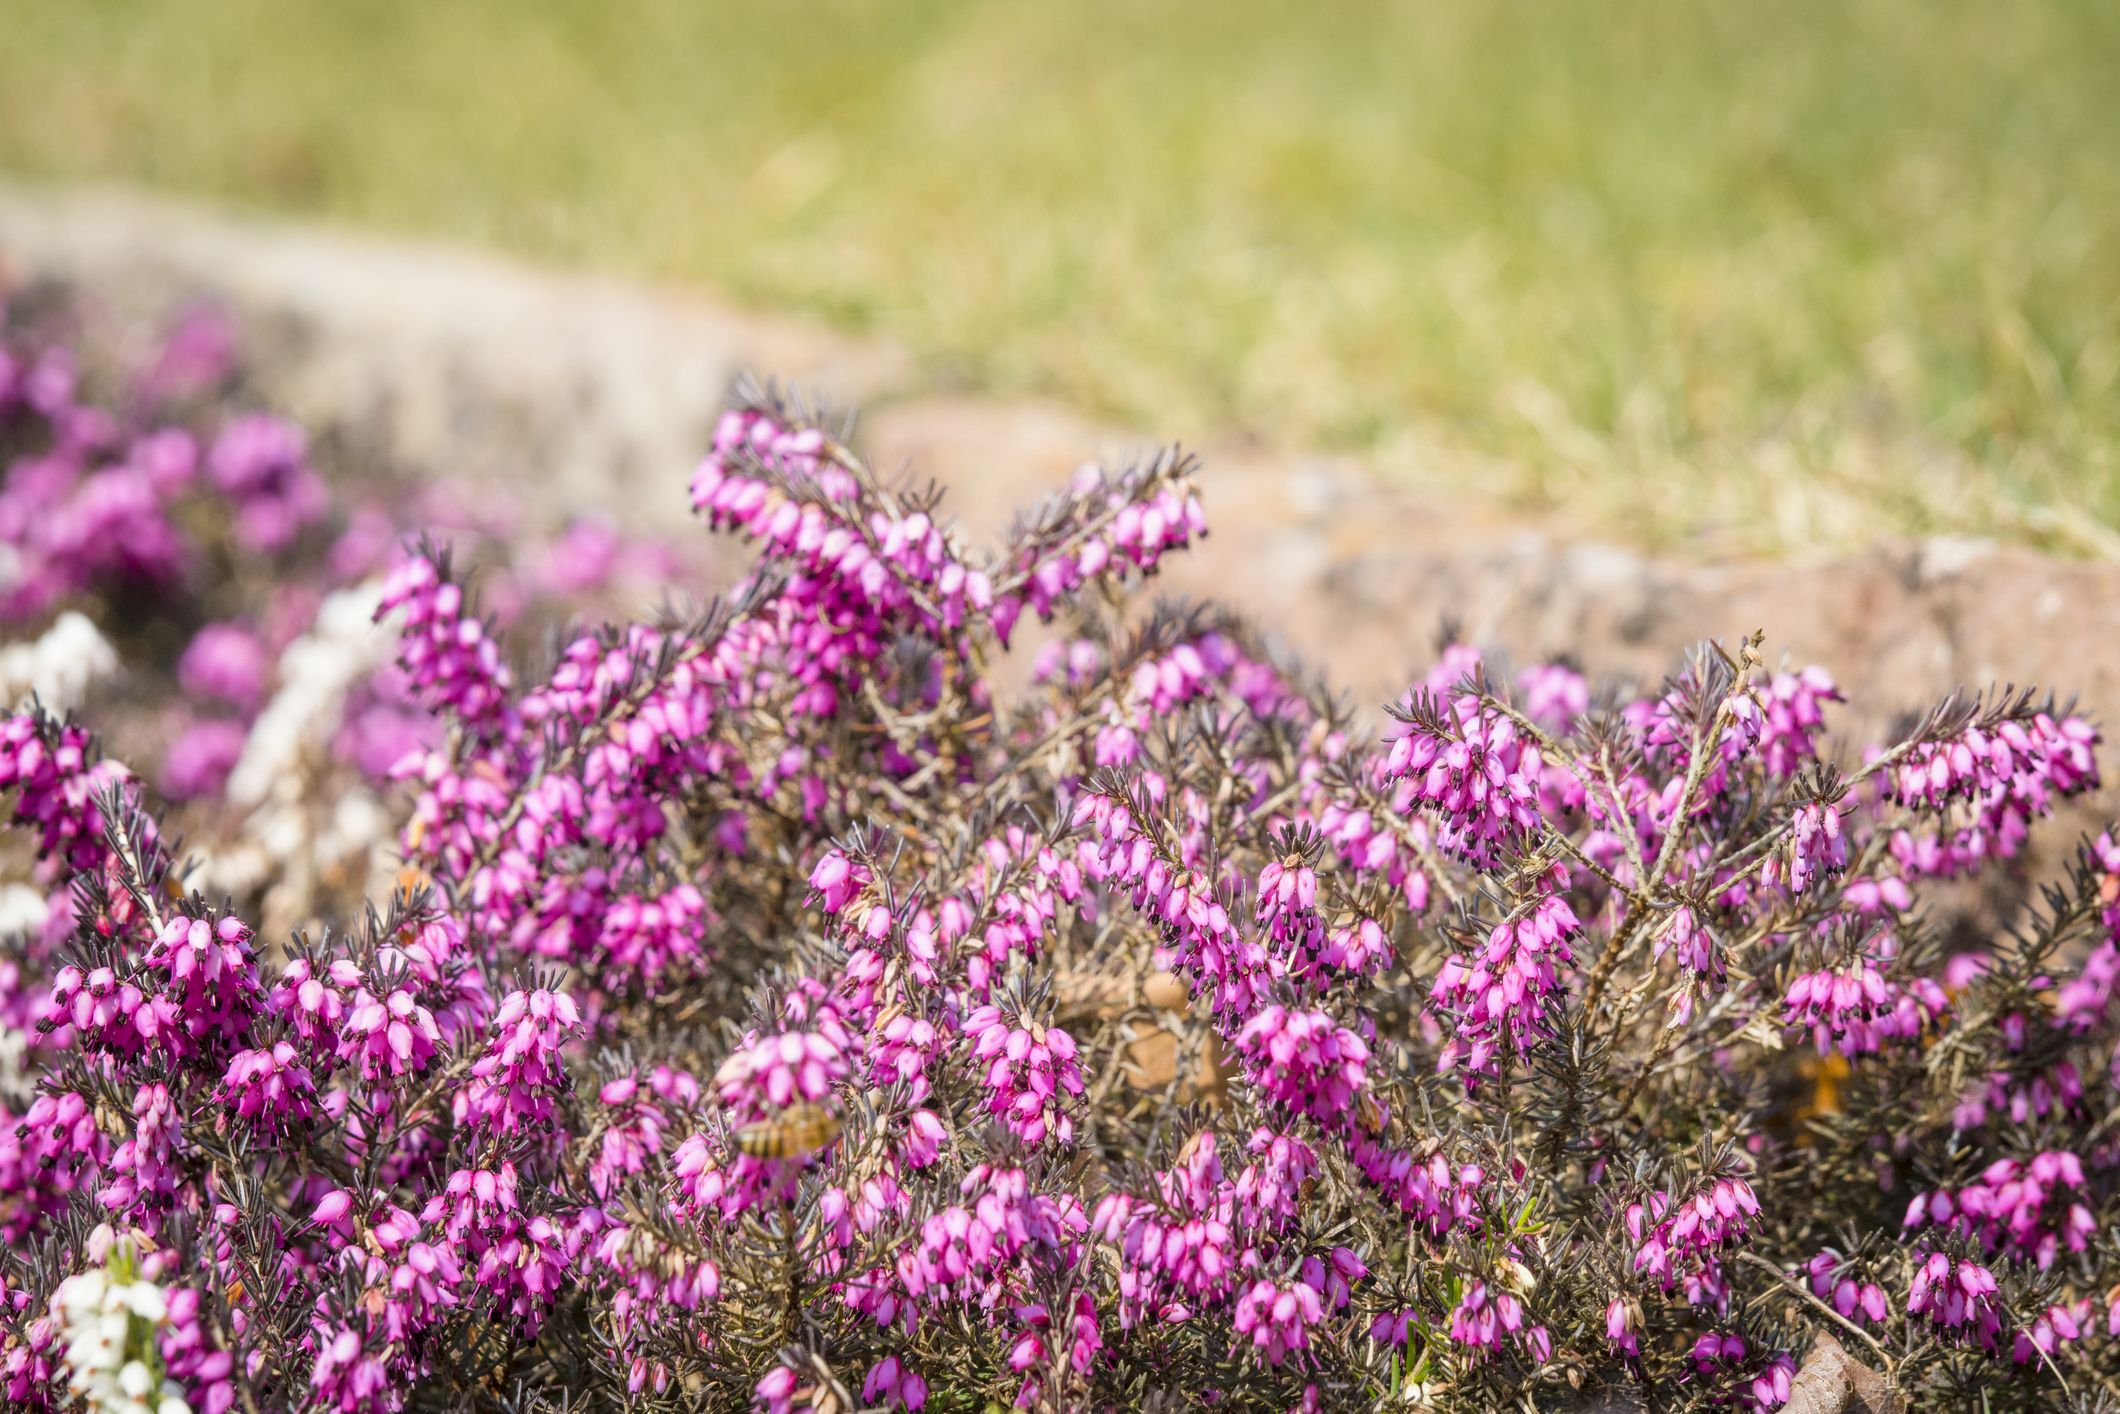 Wild heather in vibrant purple colors